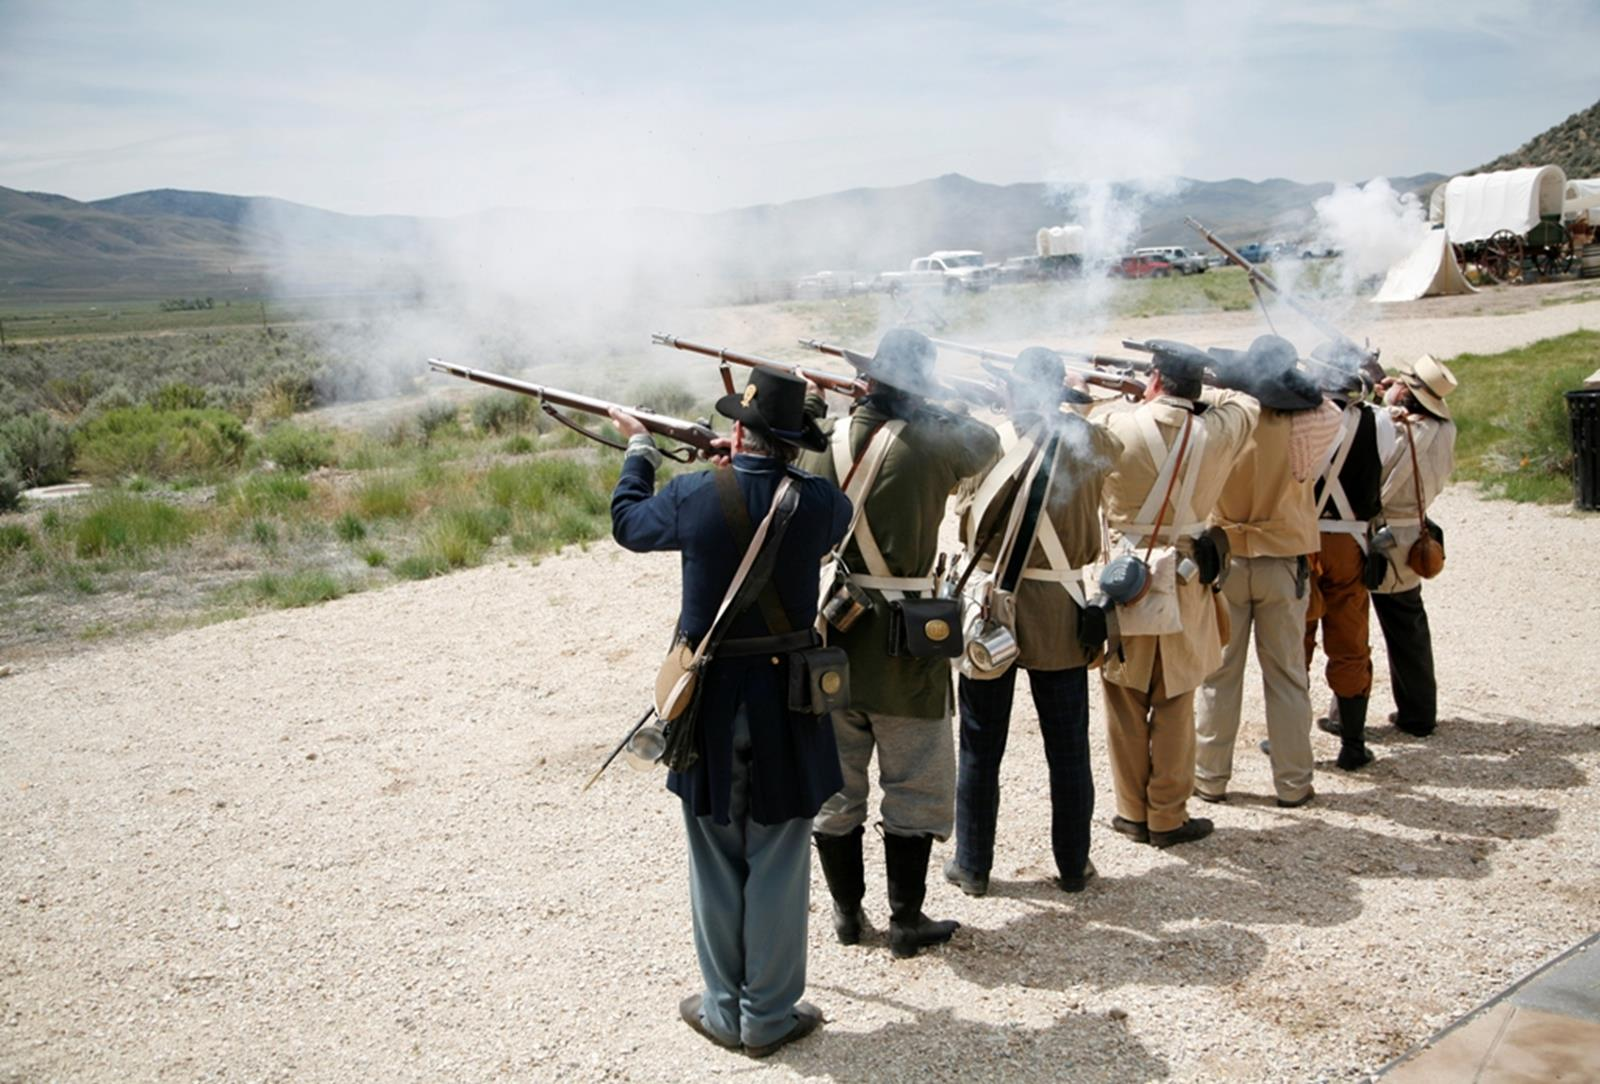 A black powder demonstration at California Trail Interpretative Center. Credit: Kaitlin Godbey/Travel Nevada